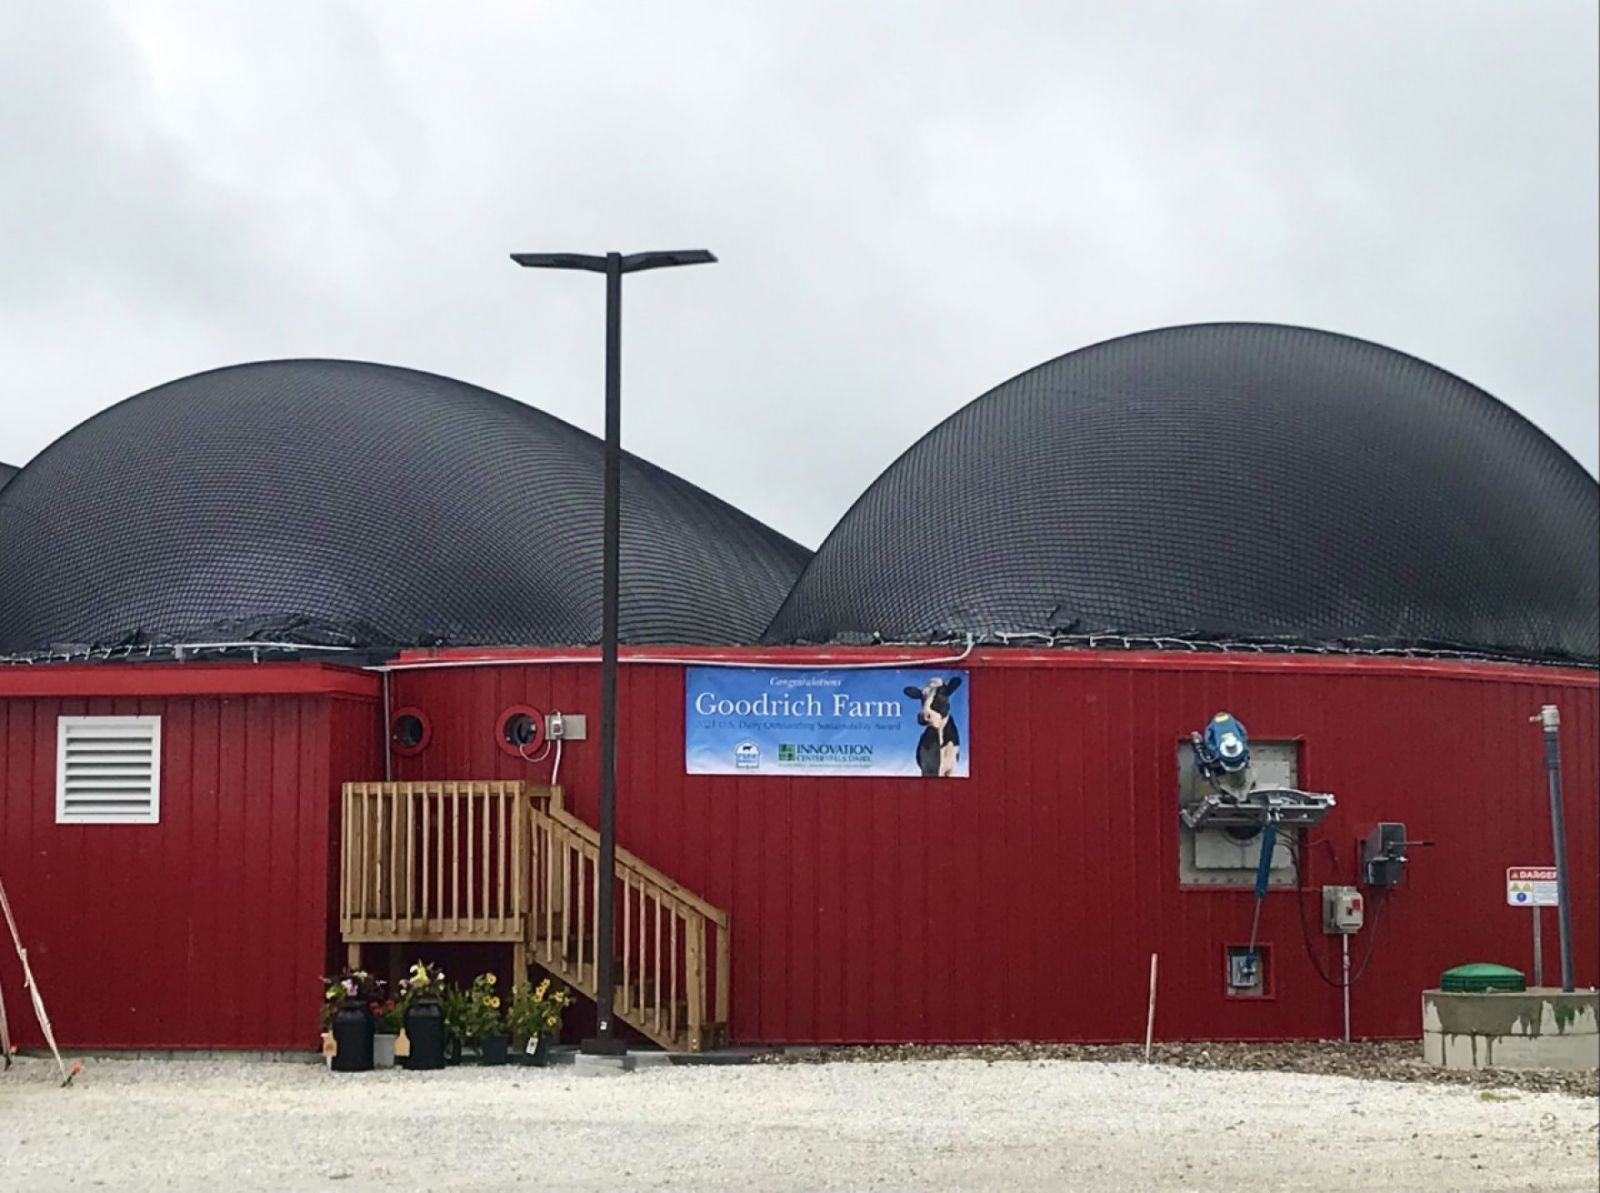 An image showing a large red building with two domes on top and a sign reading Goodrich Farm